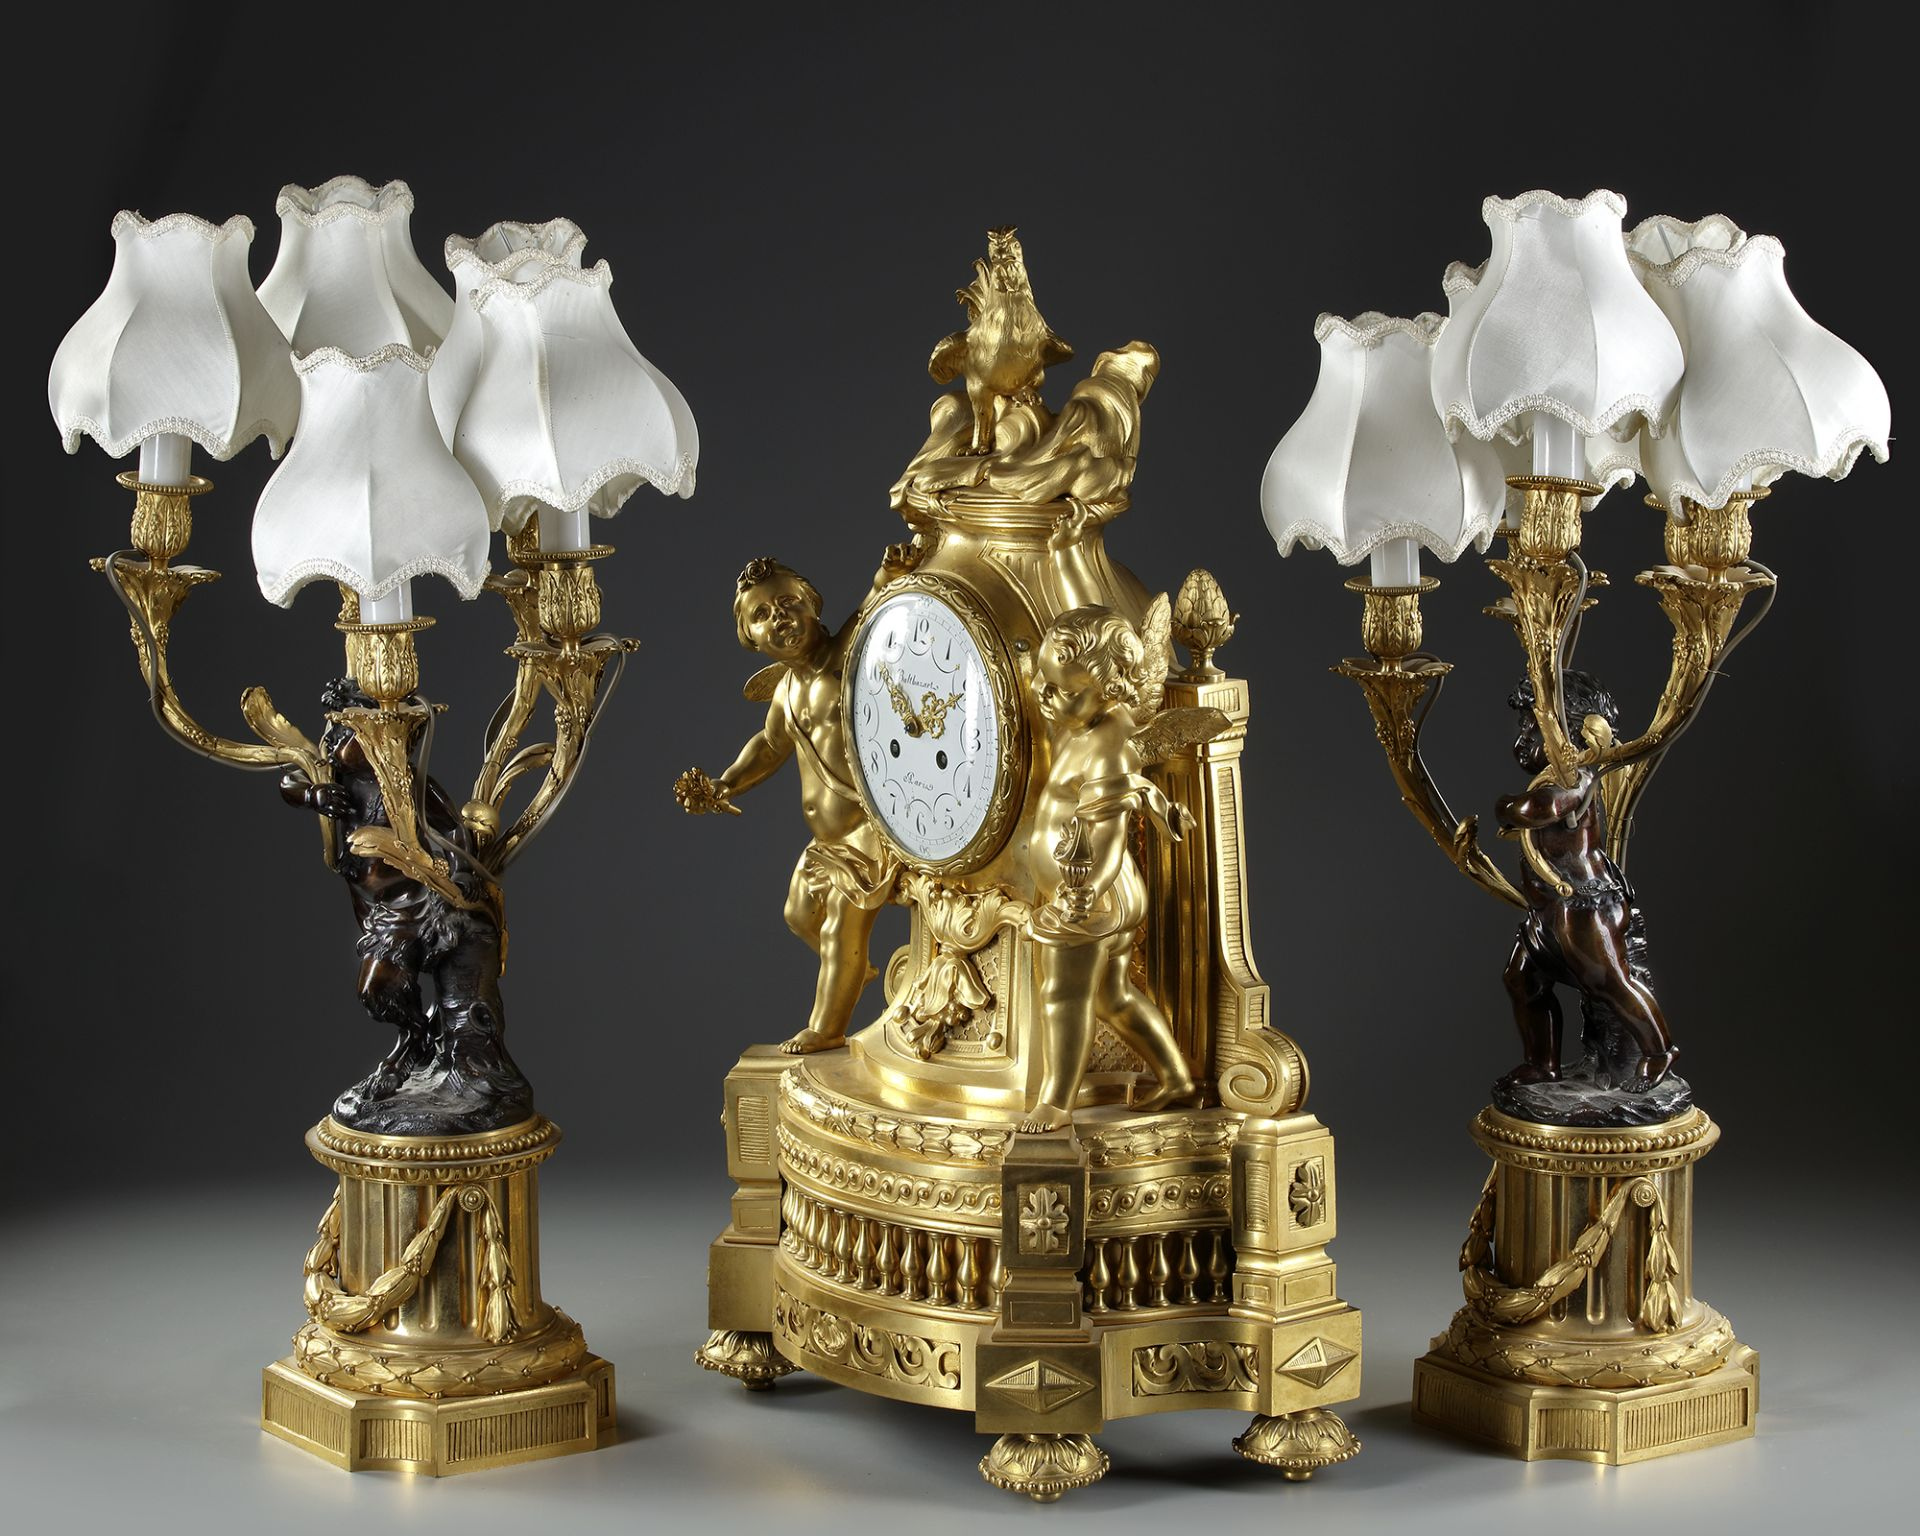 AN IMPORTANT GILT BRONZE CLOCK SET, FRANCE, 19TH CENTURY - Image 3 of 3